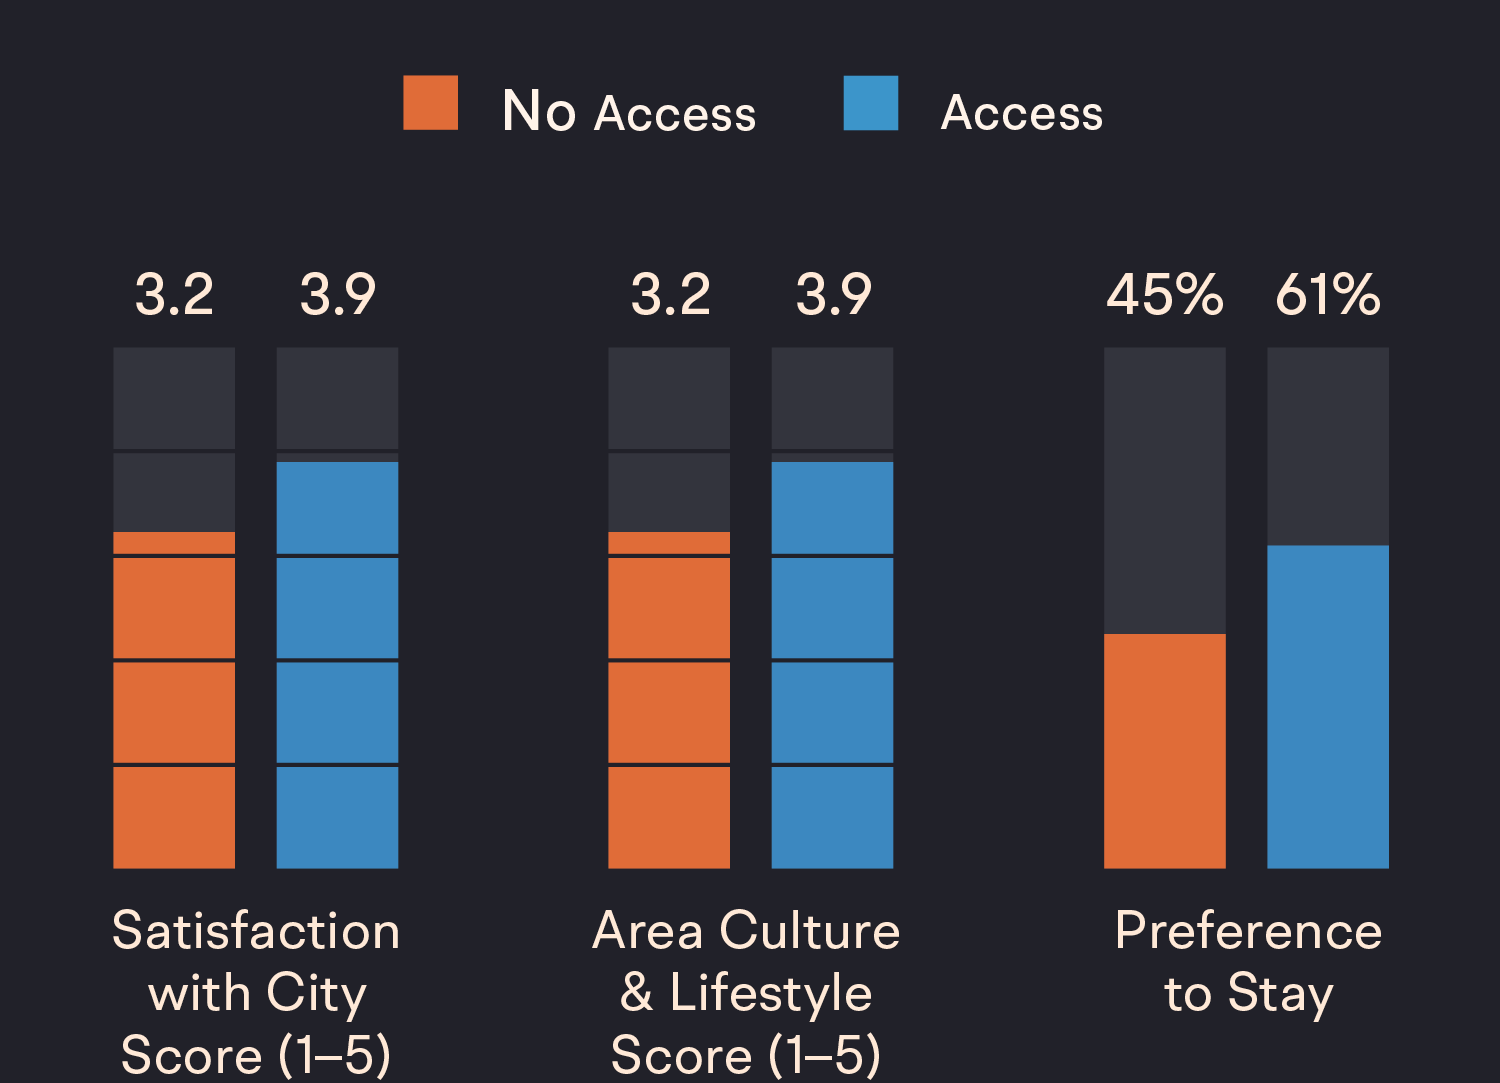 A series of charts showing that individuals who have access to recreational spaces are more attached to their city. This leads to higher feelings of satisfaction and an overall increase in the perceived cultural fit of a city